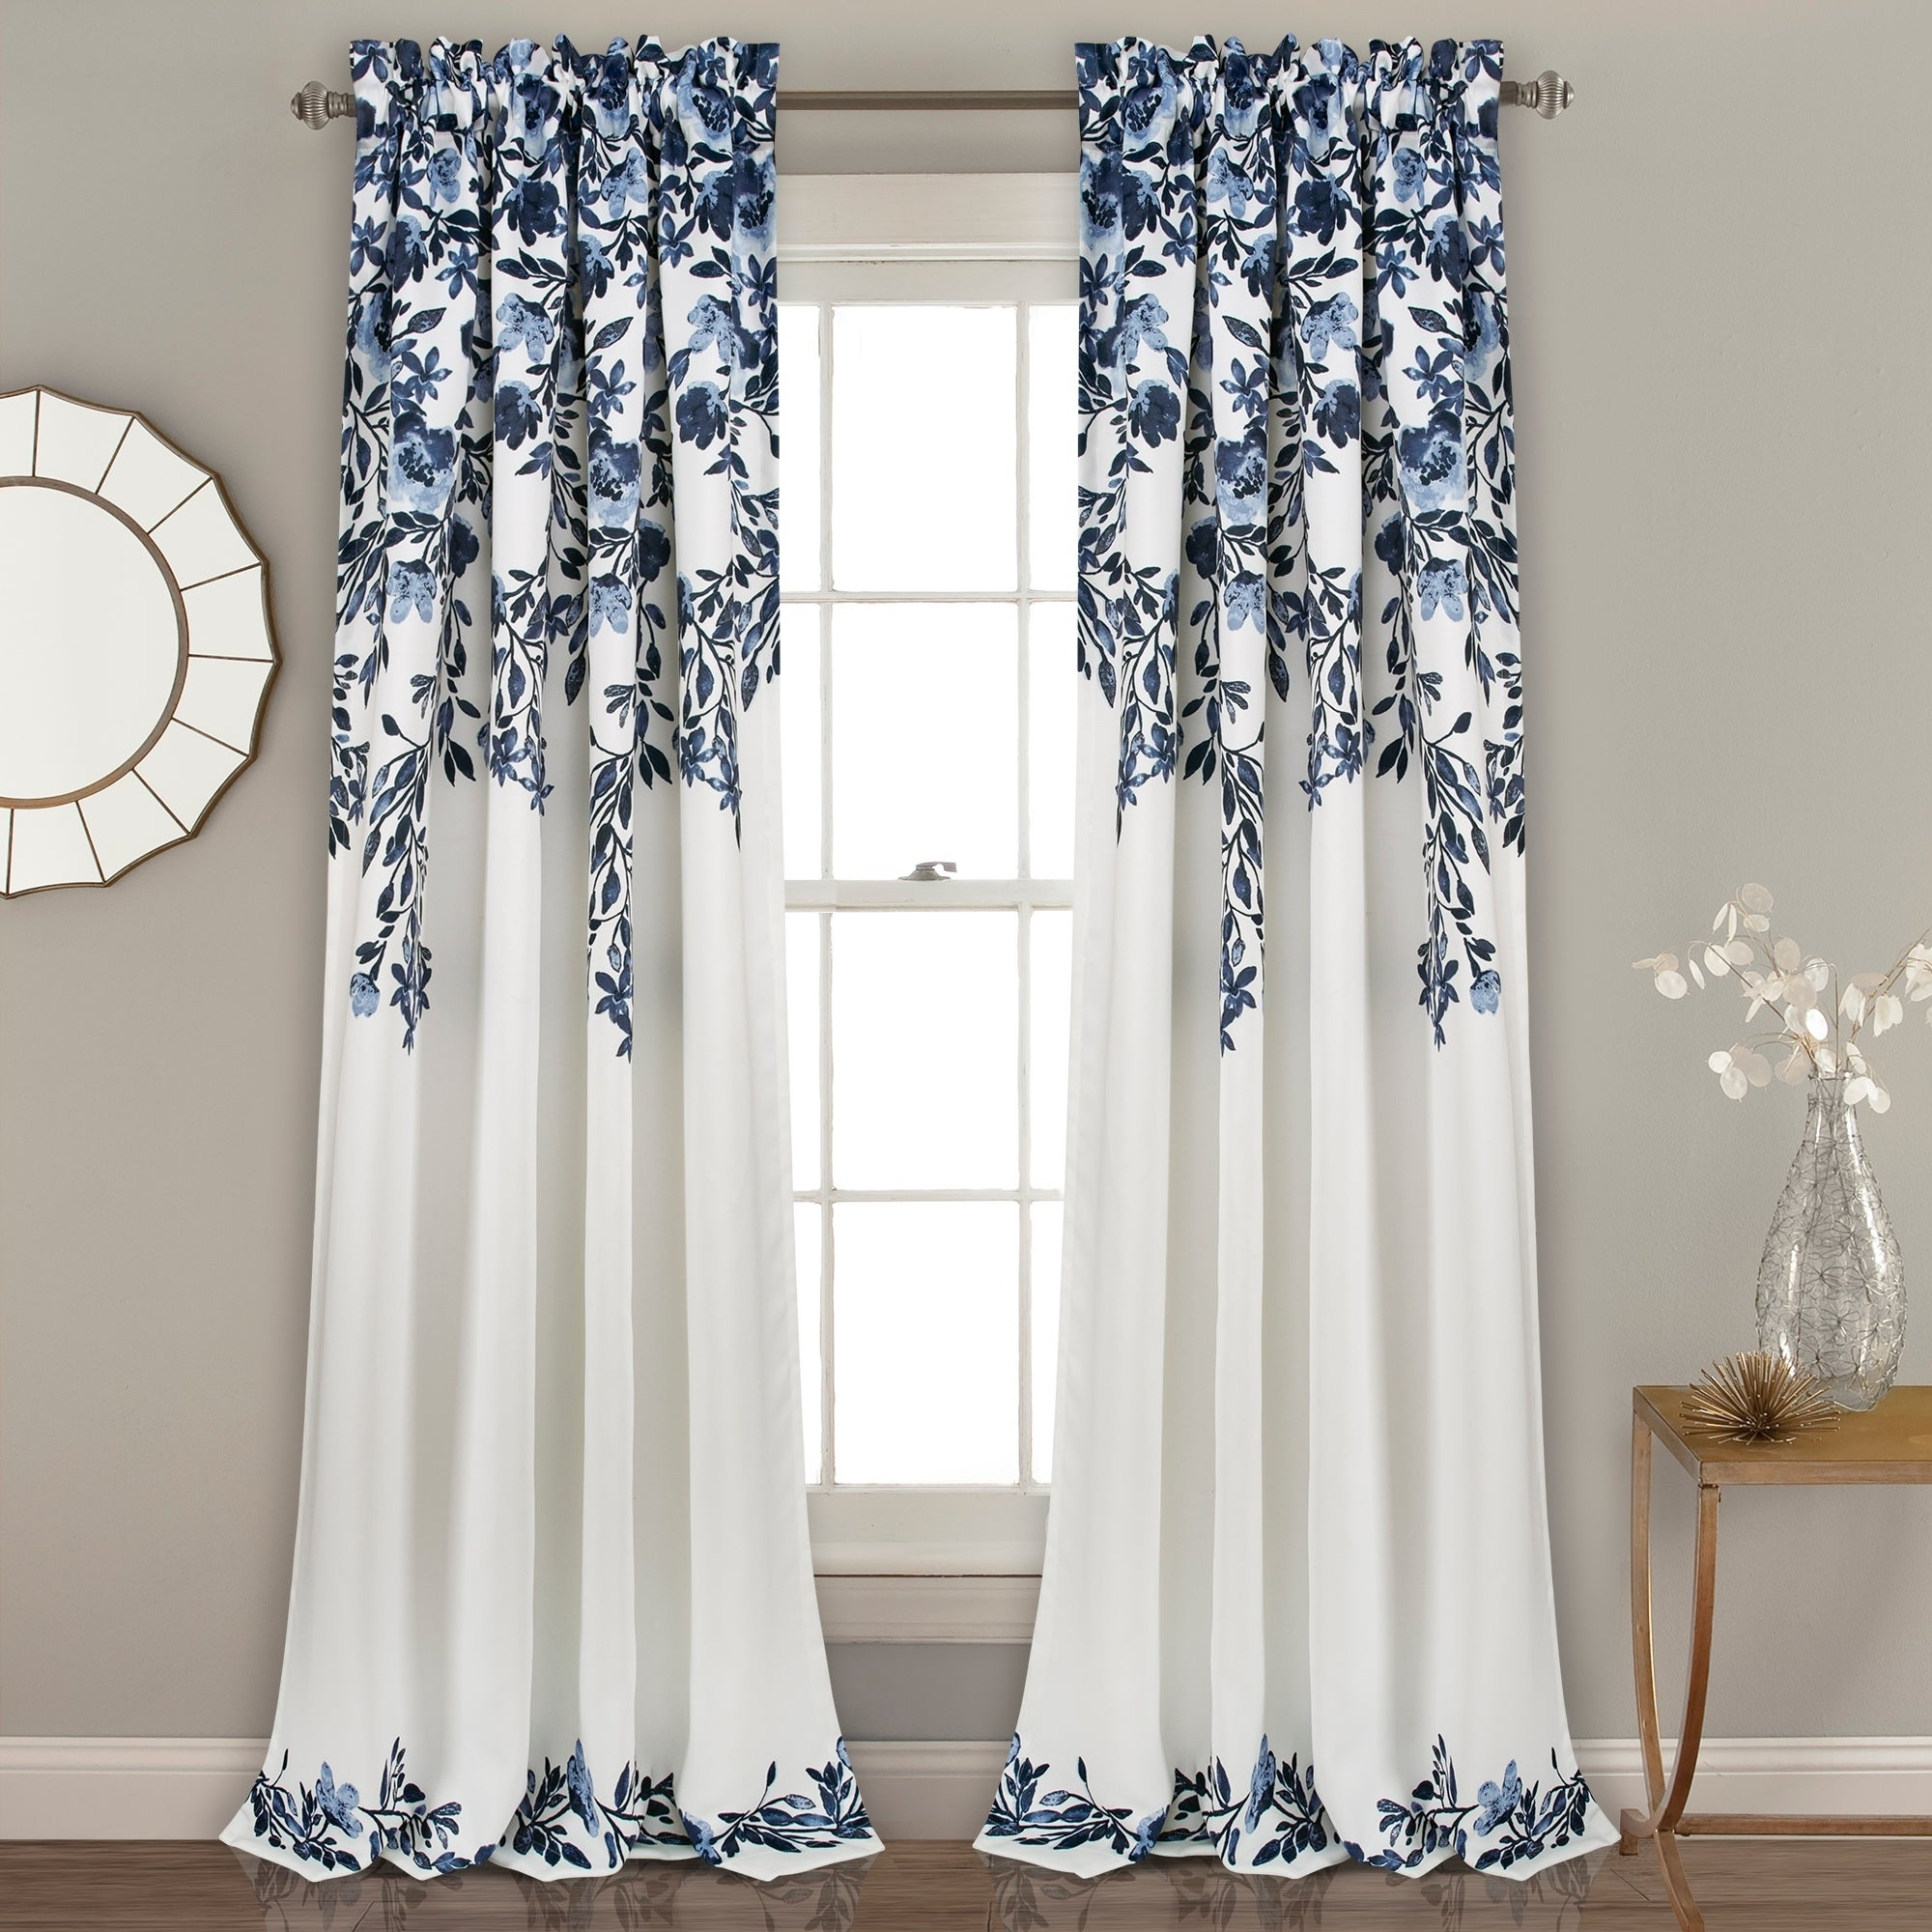 Gray Barn Dogwood Floral Curtain Panel Pairs Pertaining To Most Up To Date Porch & Den Elcaro Floral Pattern Room Darkening Window Curtain Panel Pair (View 11 of 20)